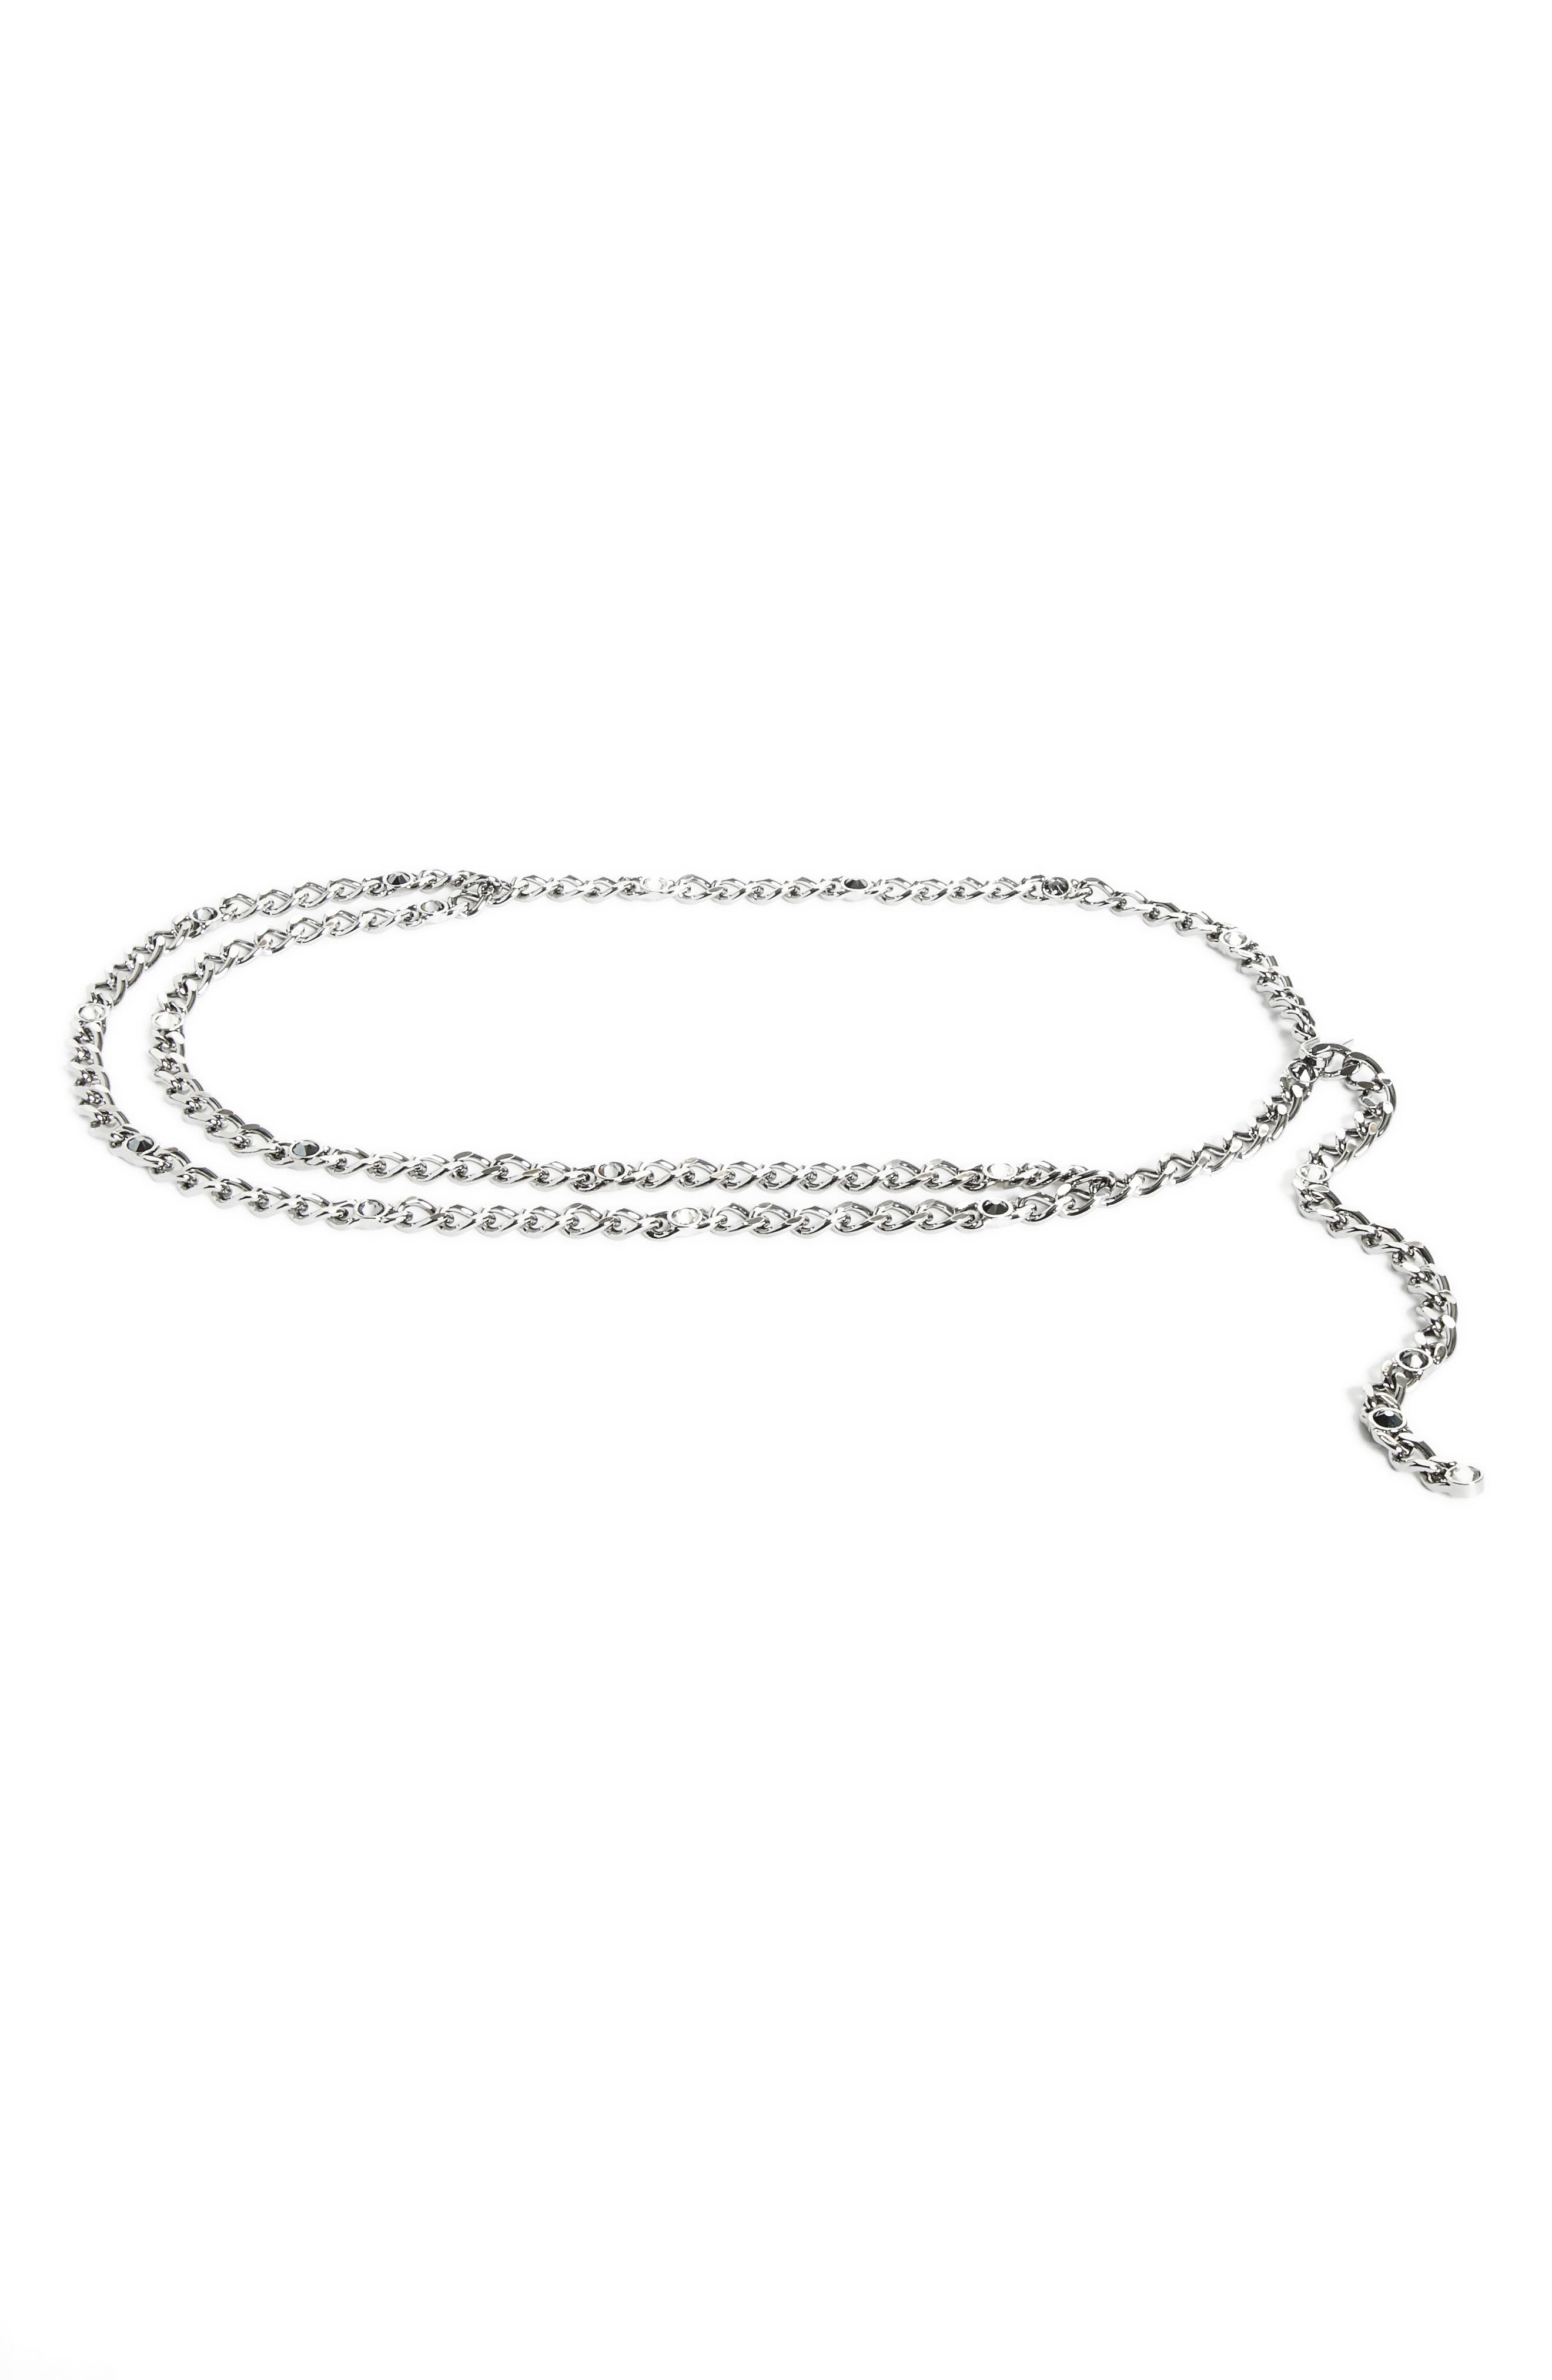 Swarovski Crystal Chain Belt,                             Main thumbnail 1, color,                             040